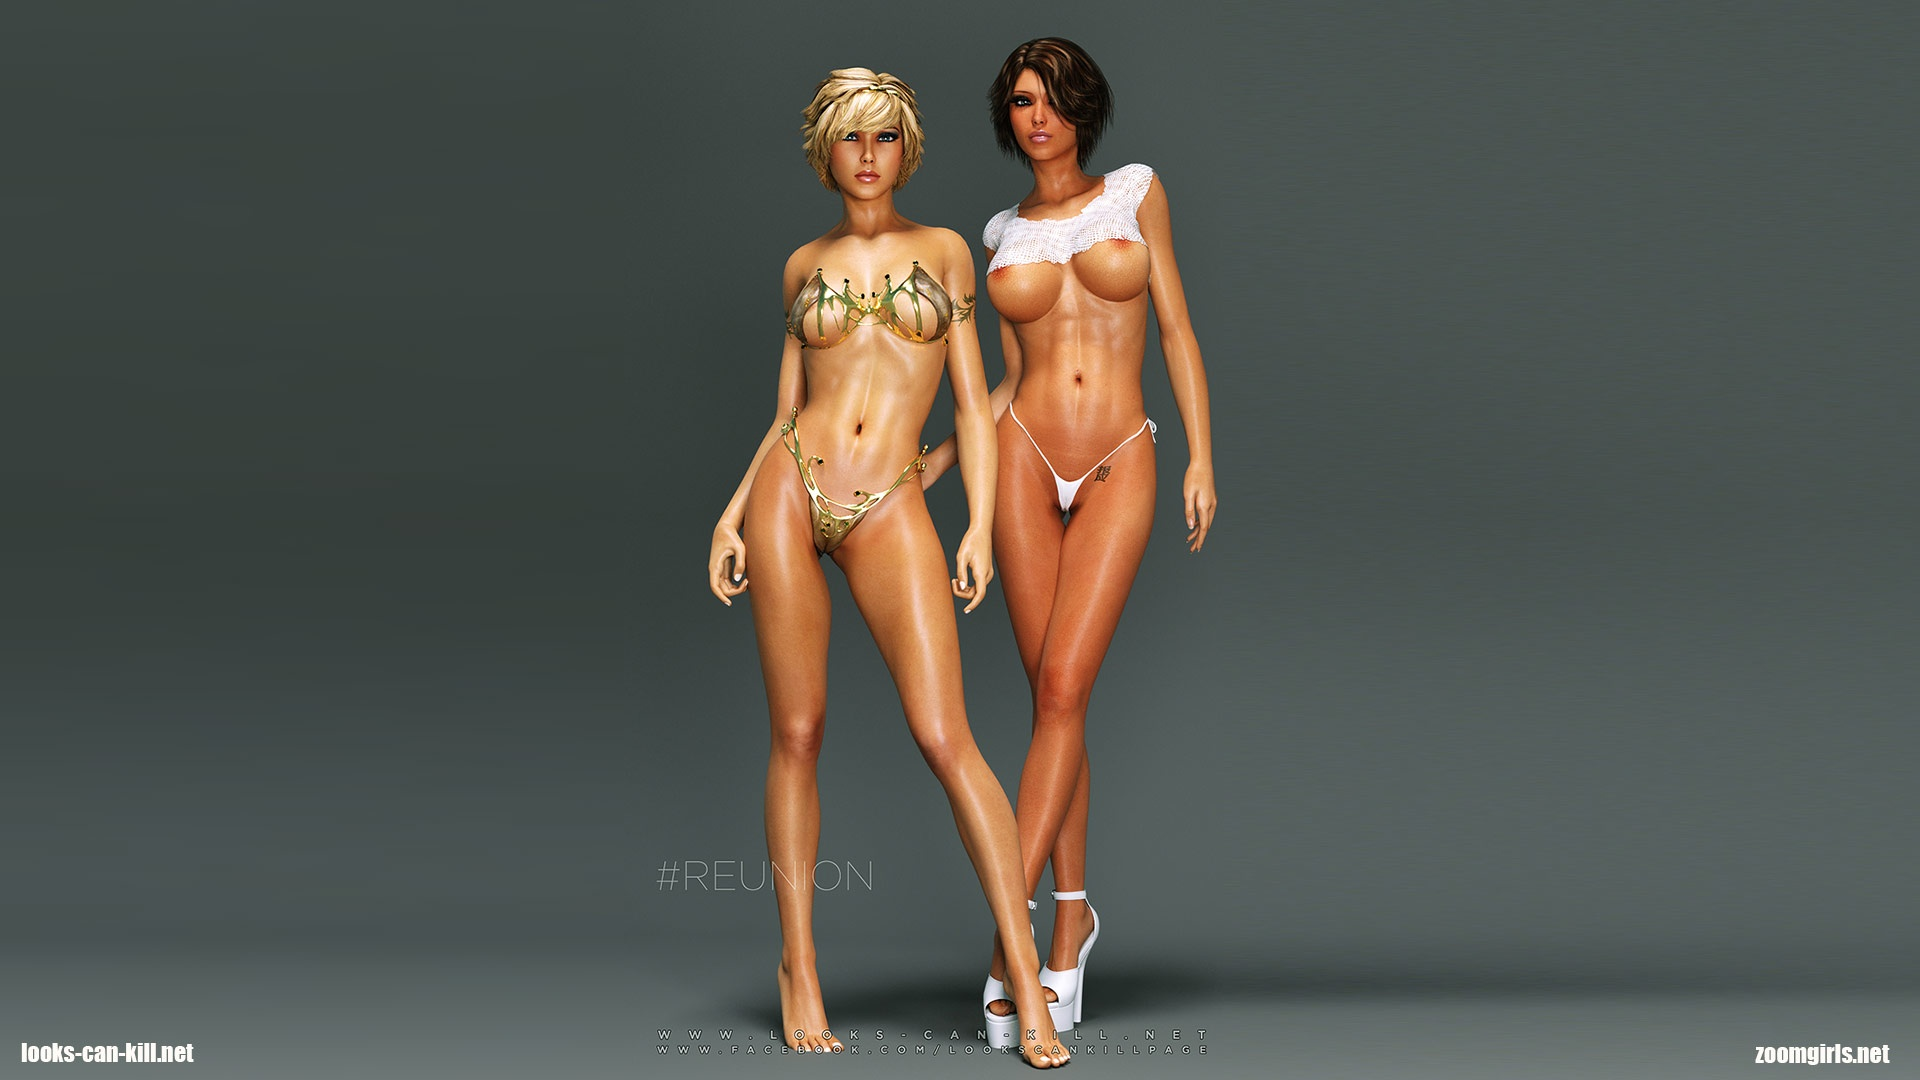 3D Cgi Sex hot cgi 3d babes with huge tits showing her perfect rendered